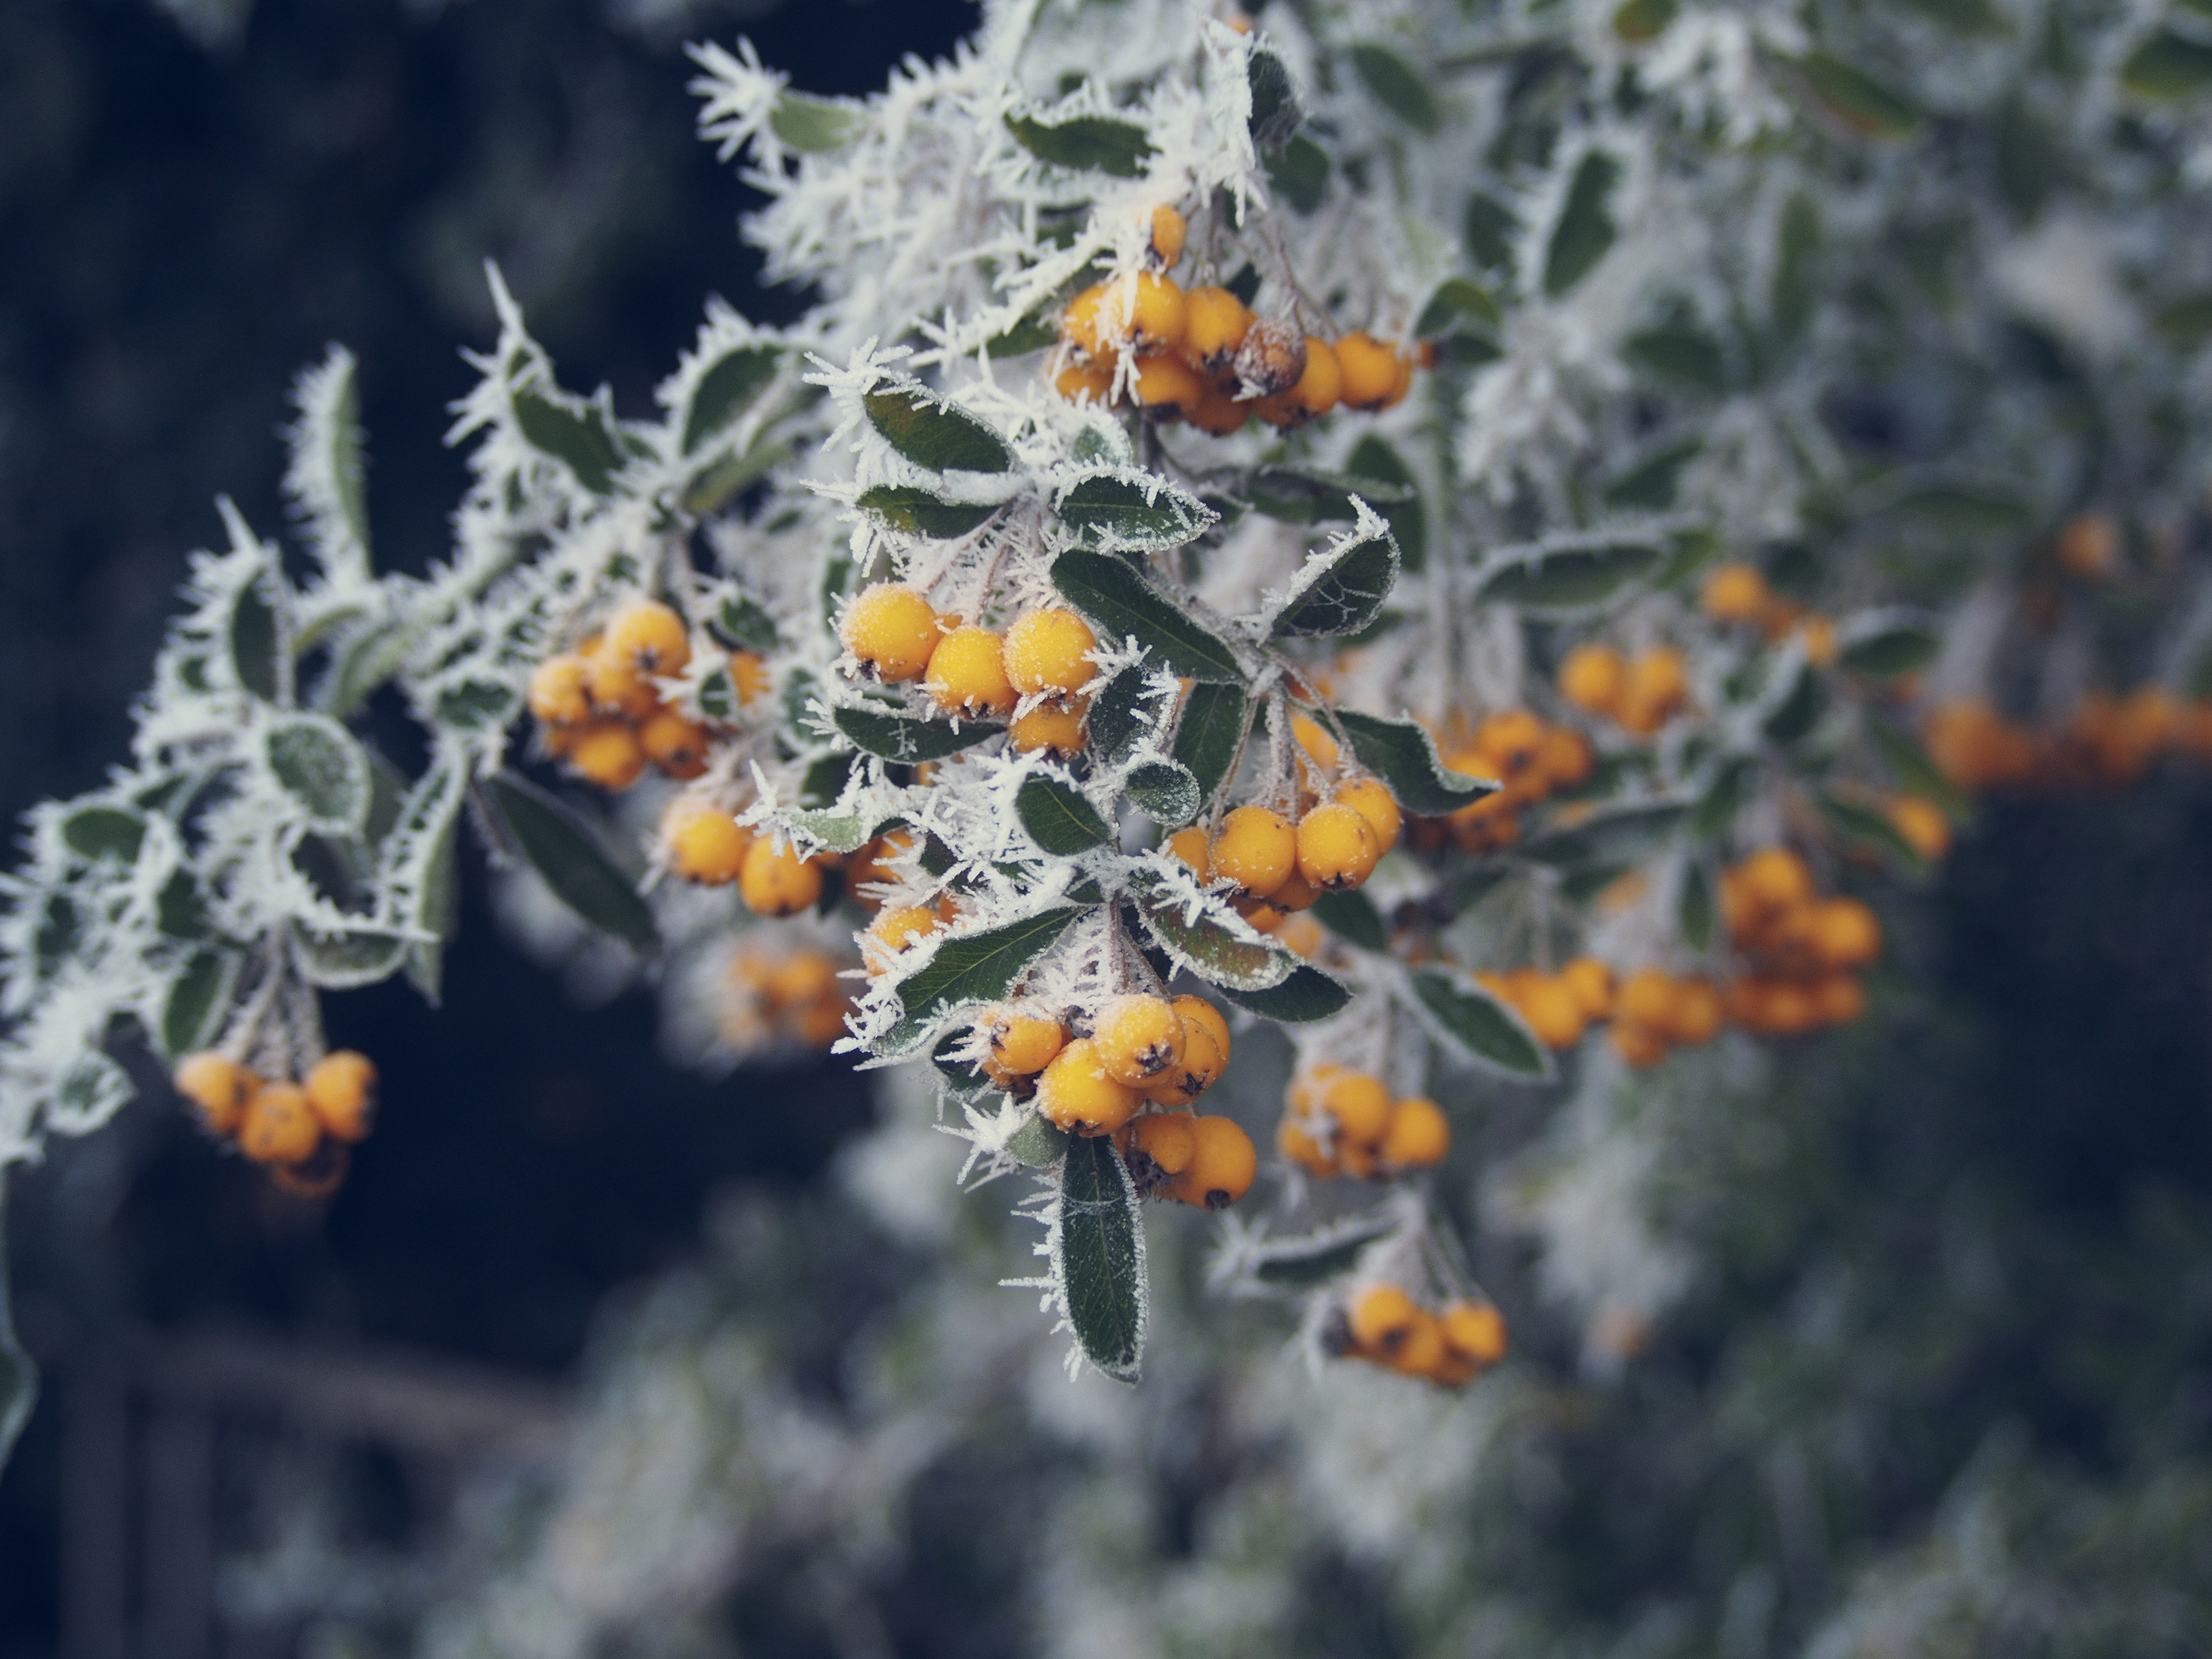 155901 download wallpaper Macro, Rime, Frost, Berries screensavers and pictures for free